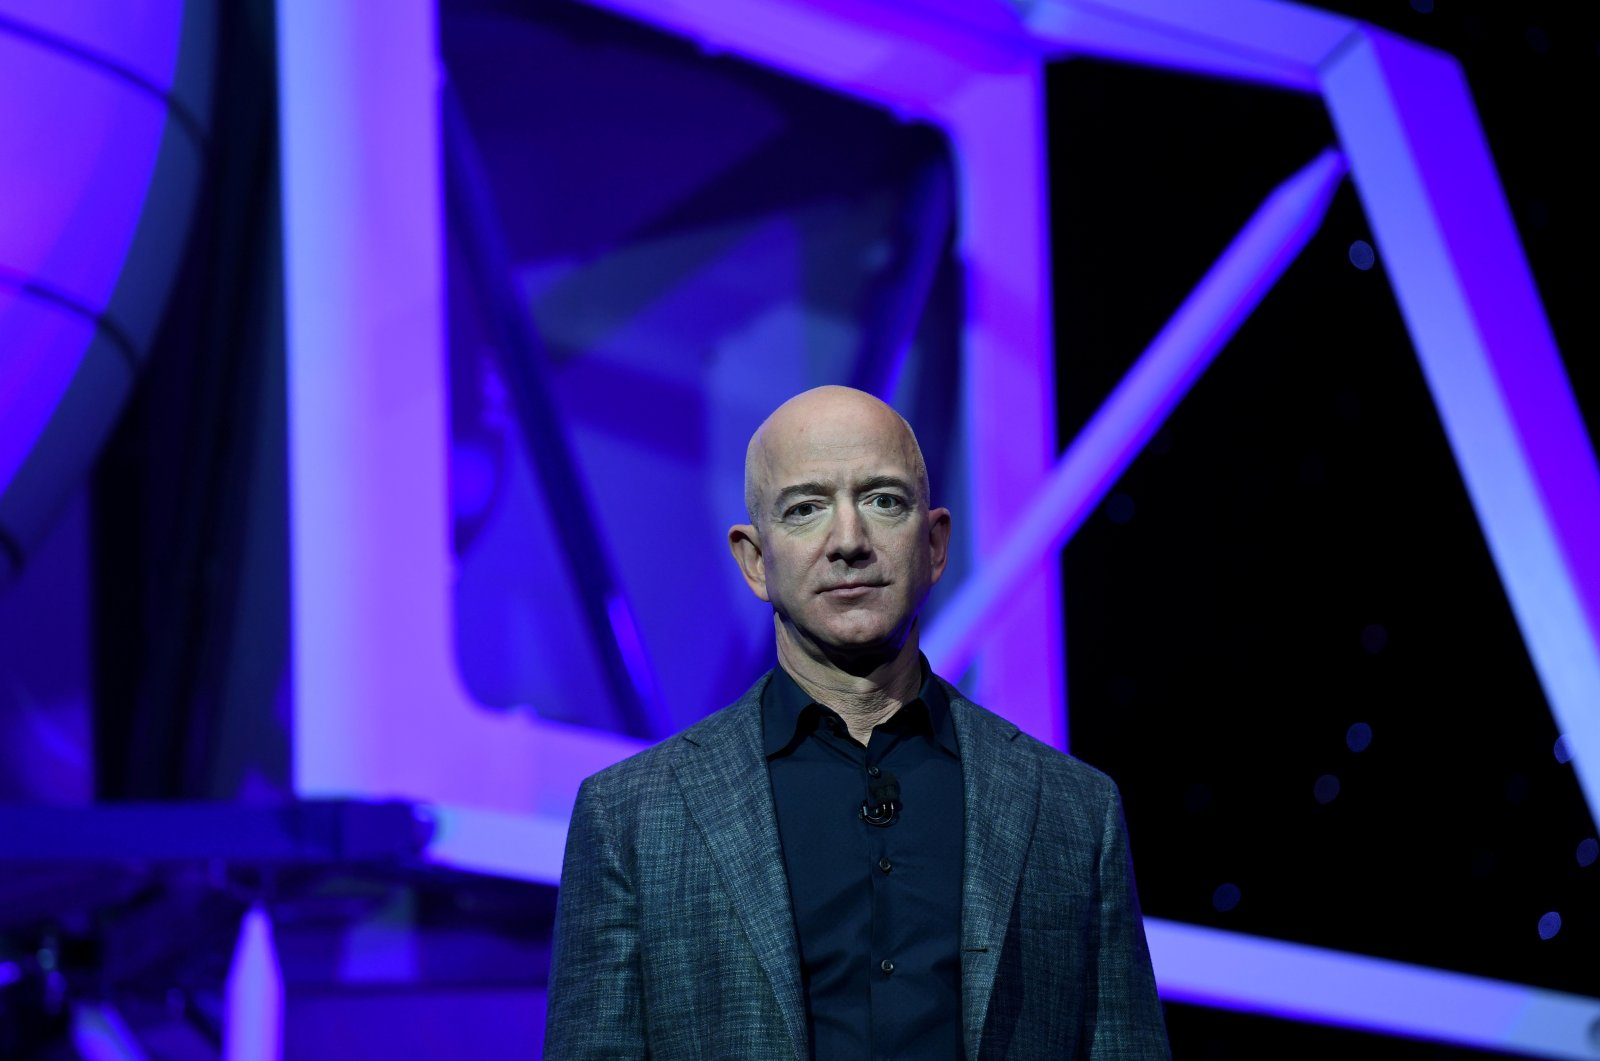 Founder, Chairman, CEO and President of Amazon Jeff Bezos unveils his space company Blue Origin's space exploration lunar lander rocket called Blue Moon during an unveiling event in Washington, D.C., U.S., May 9, 2019. (Reuters Photo)